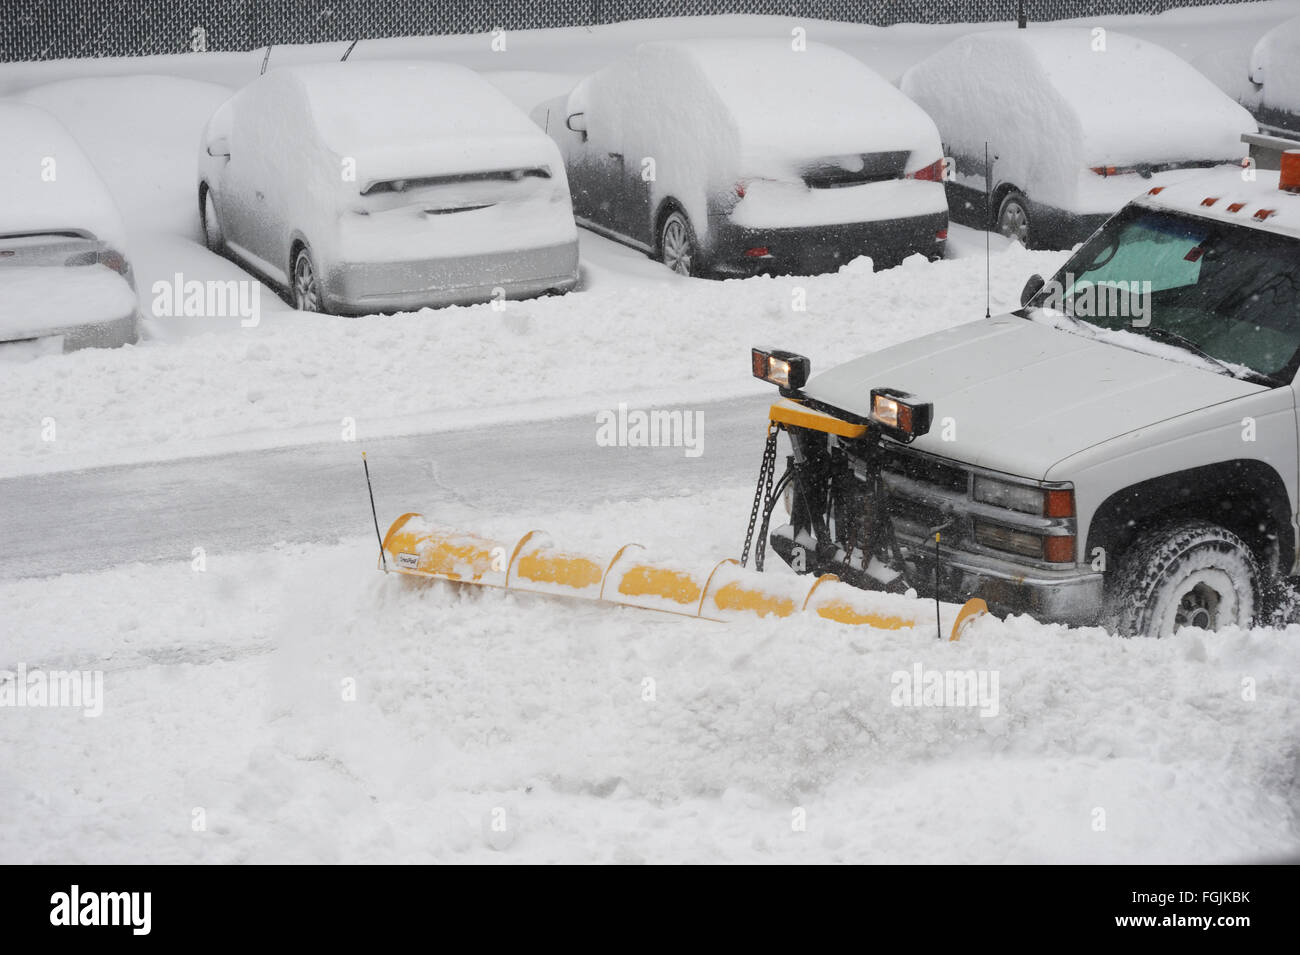 snowplow removing snow on the street after blizzard - Stock Image